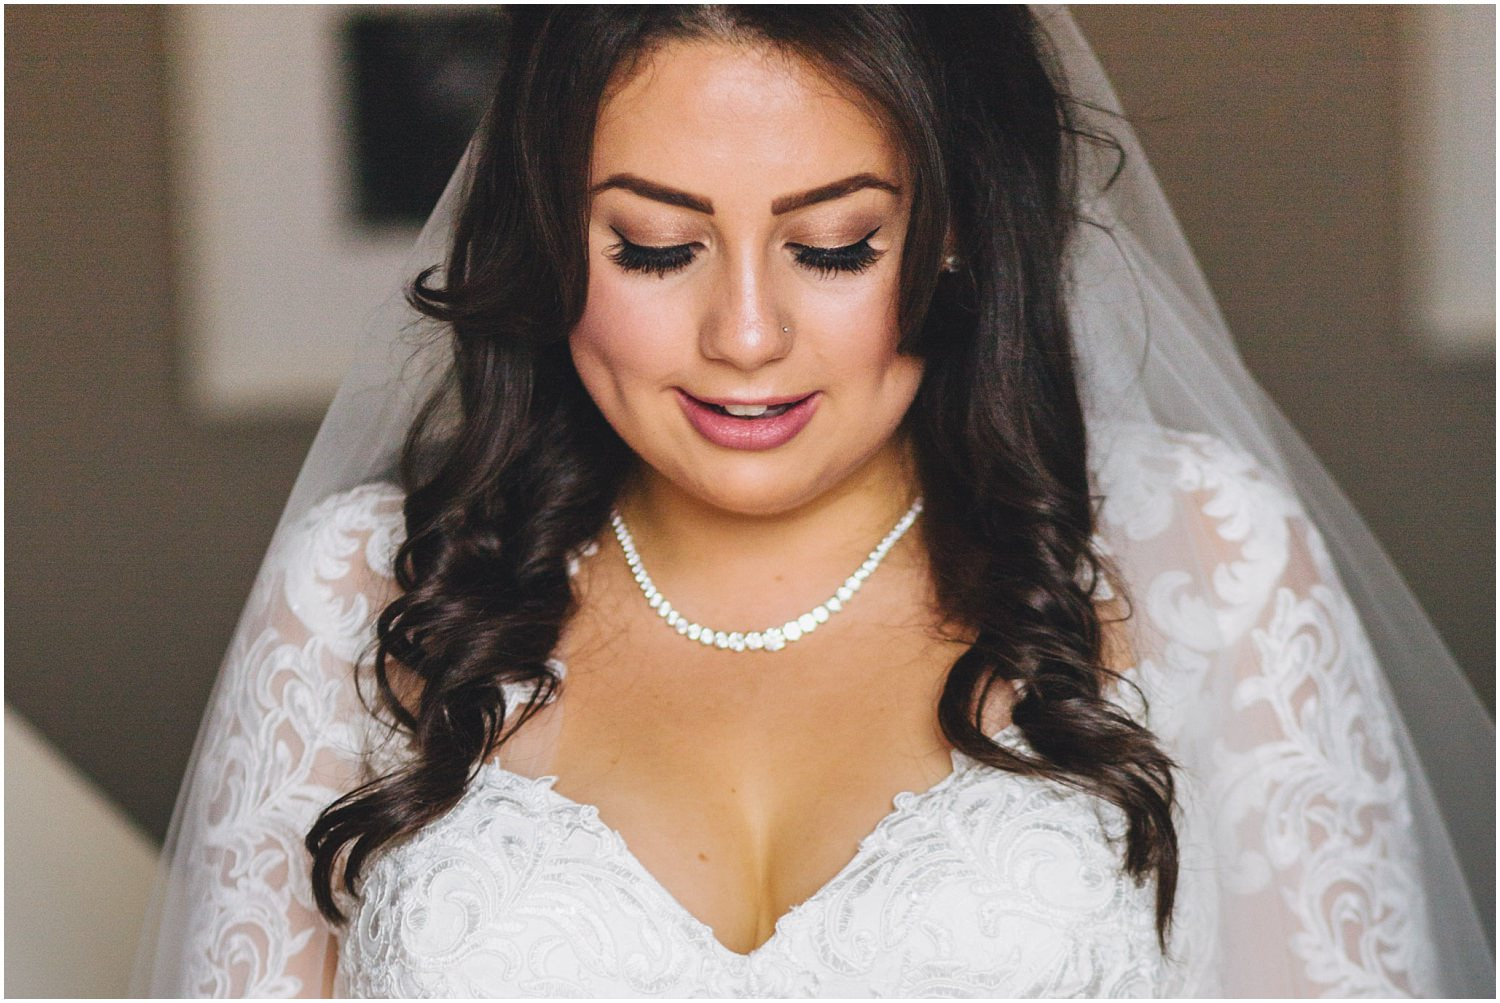 Windsor wedding - Bridal portrait at the MacDonald Windsor hotel